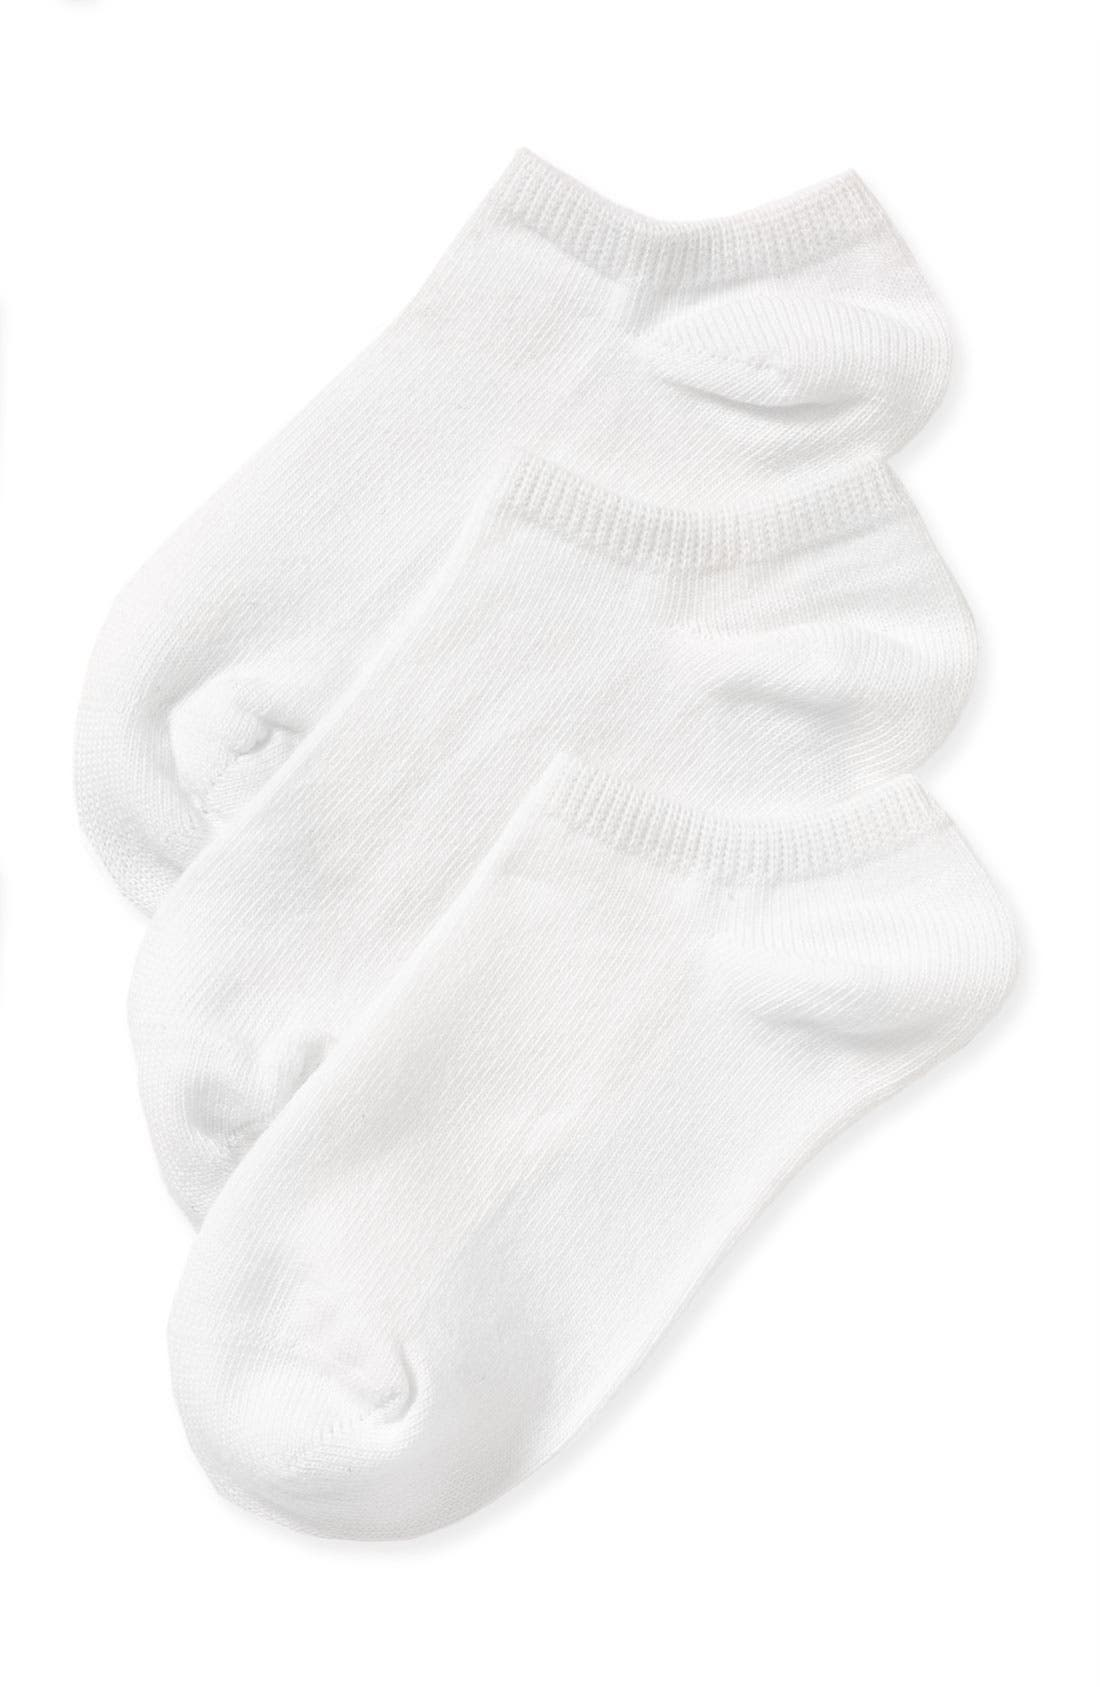 Alternate Image 1 Selected - NORDSTROM LINER SOCK 3 PACK